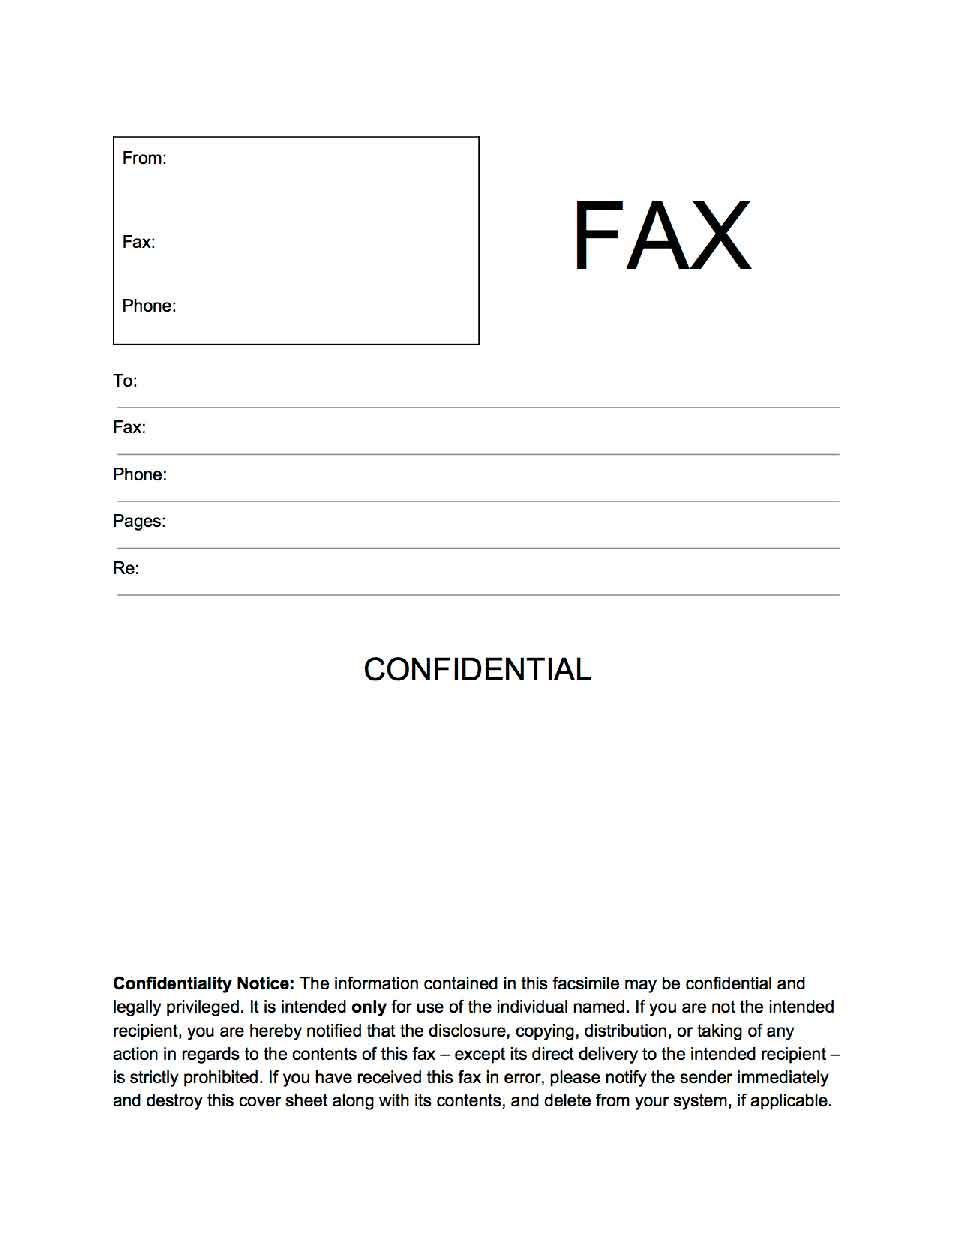 002 Unbelievable General Fax Cover Letter Template Concept  Sheet Word Confidential ExampleFull